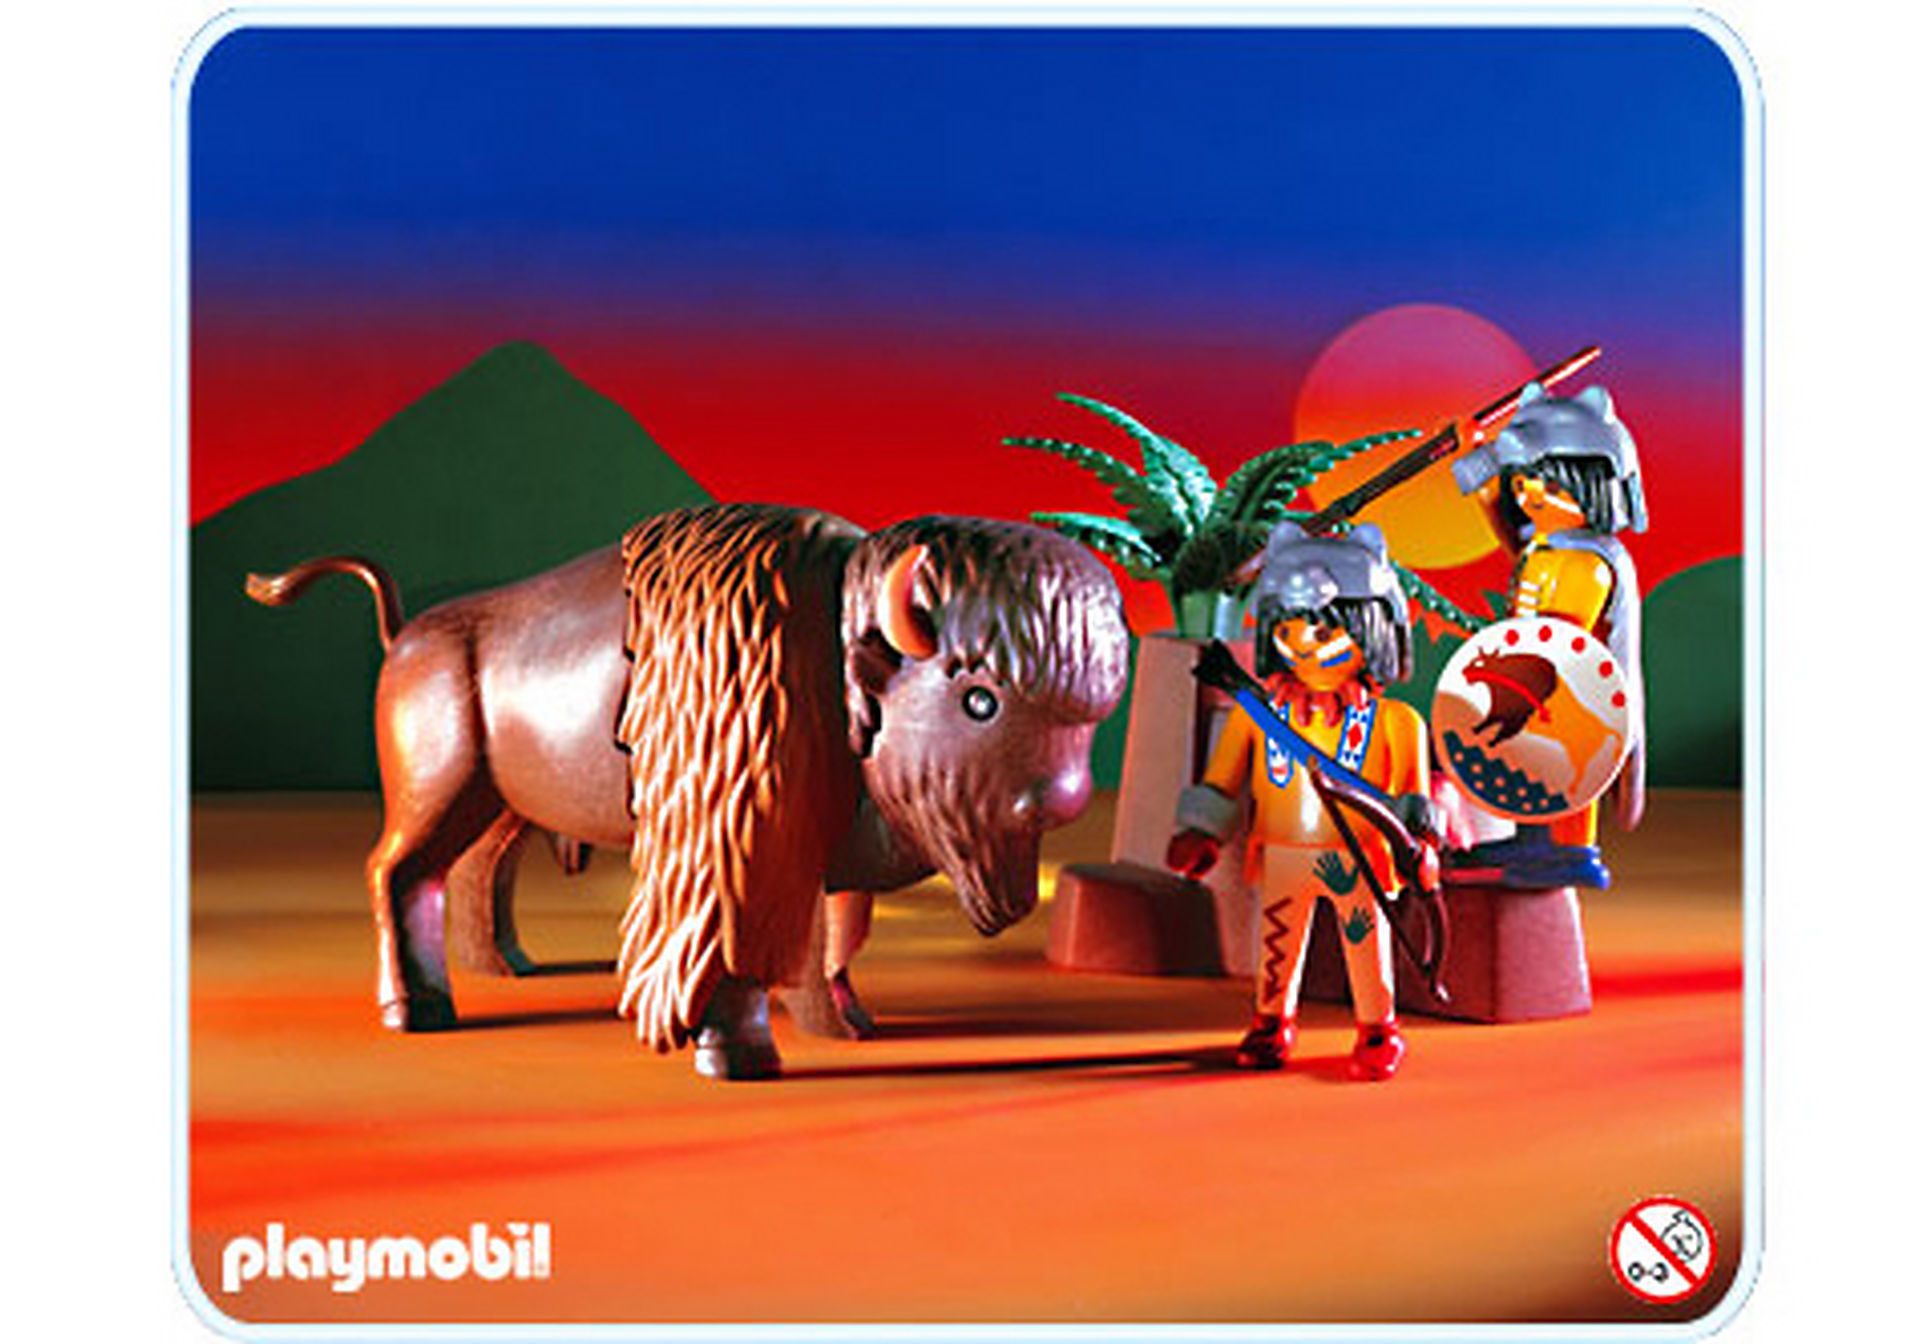 http://media.playmobil.com/i/playmobil/3874-A_product_detail/Bisonjäger